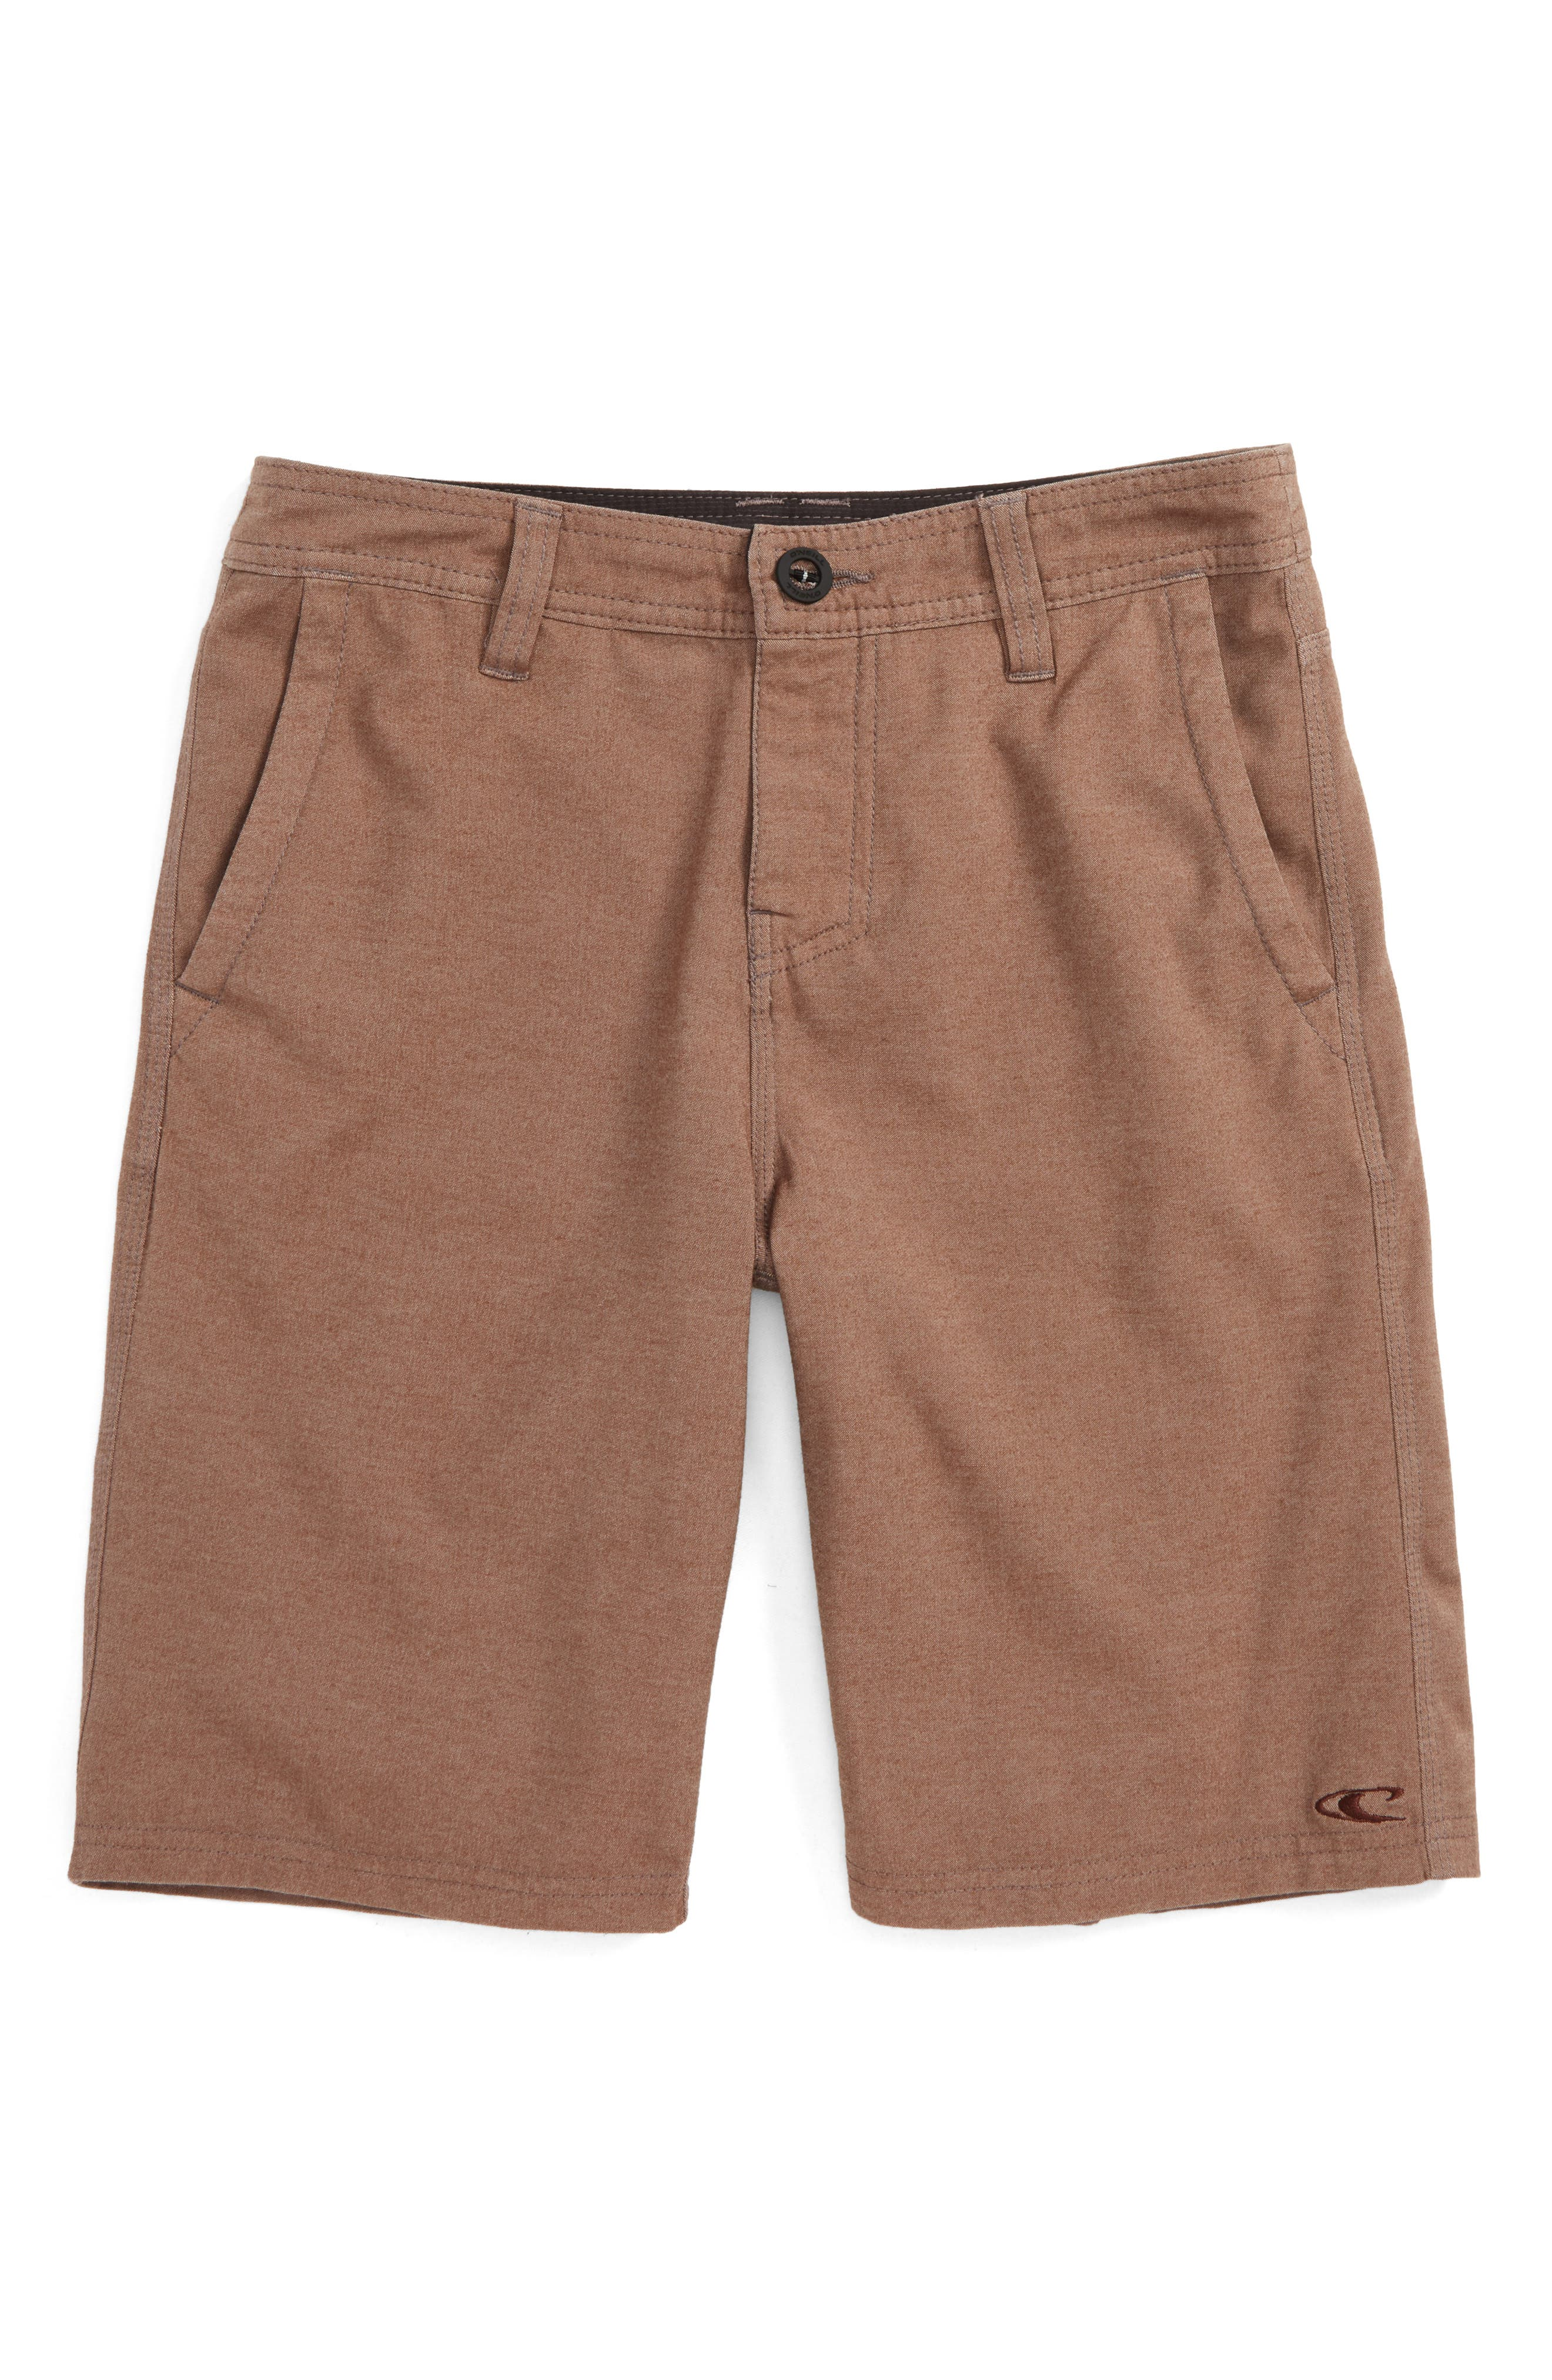 O'Neill Locked Overdye Hybrid Shorts (Big Boys)